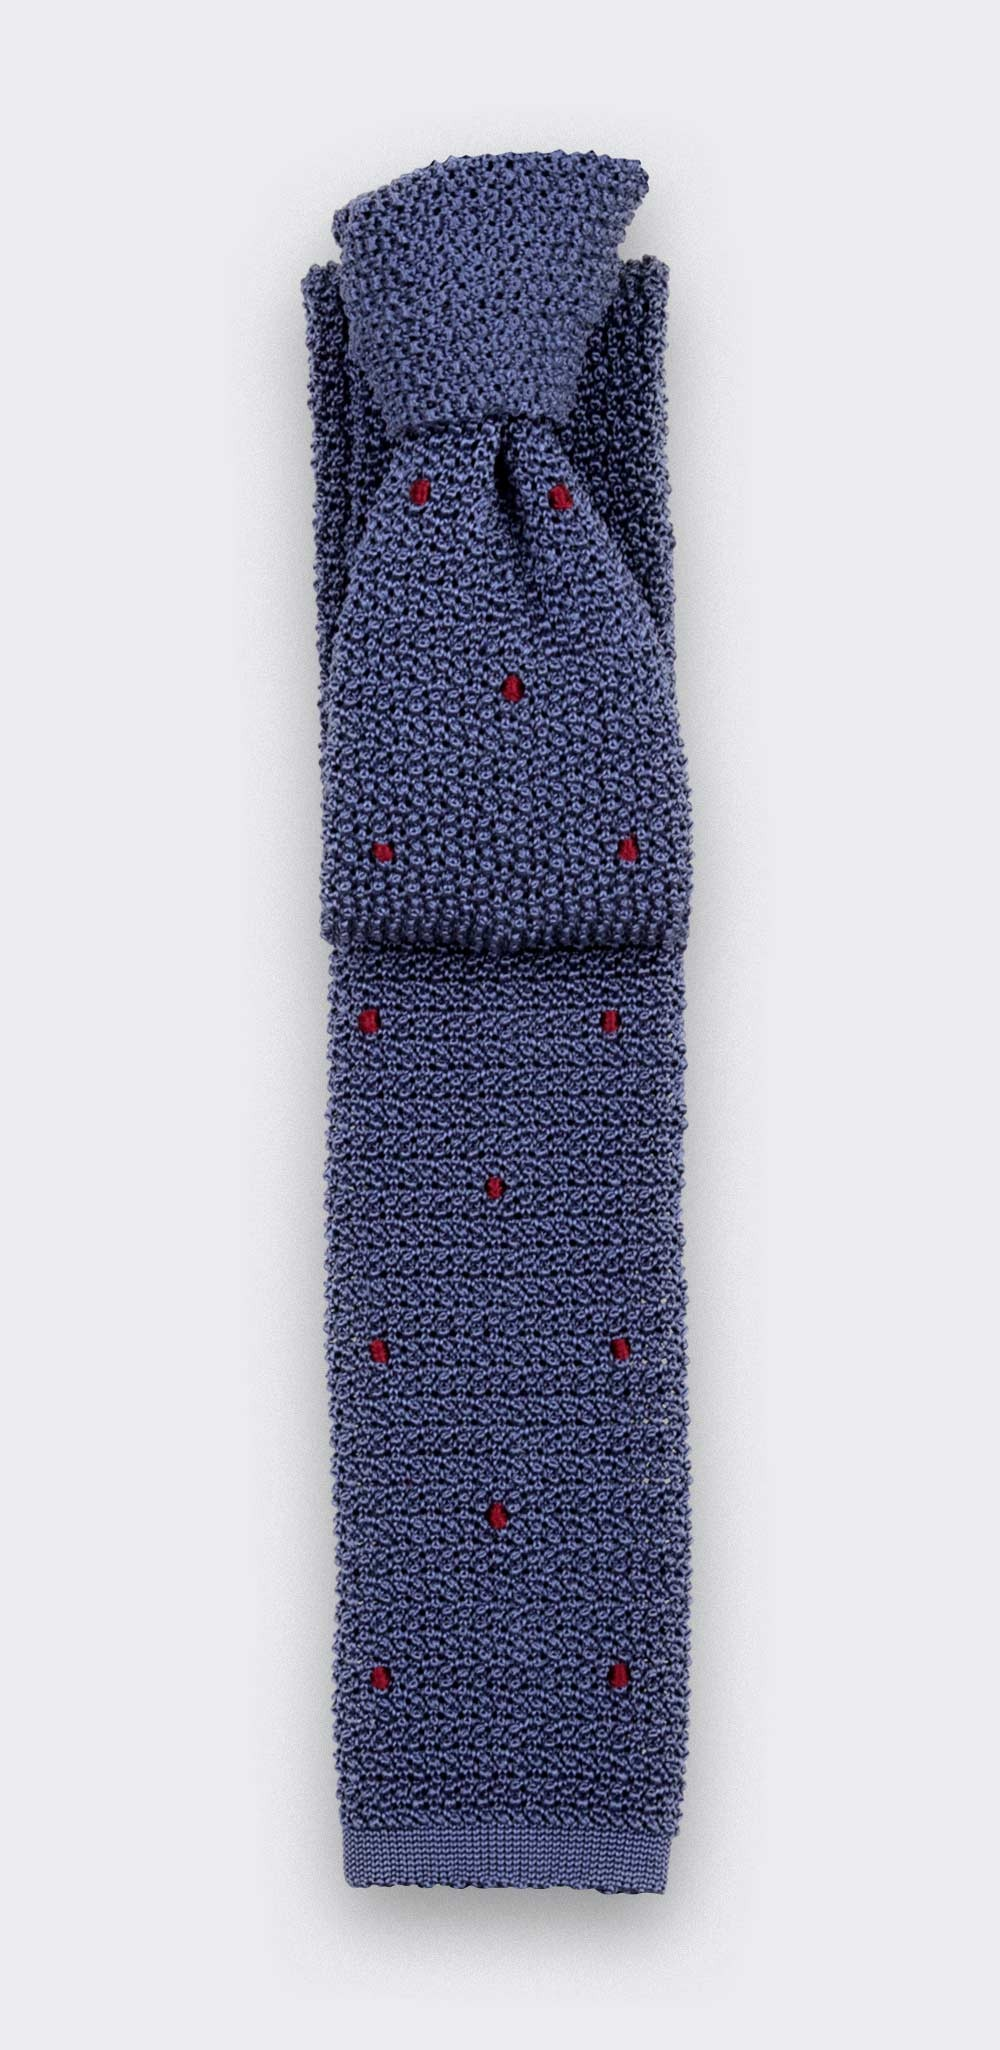 Burgundy Polka Dots Blue Knitted Tie - Cinabre Paris